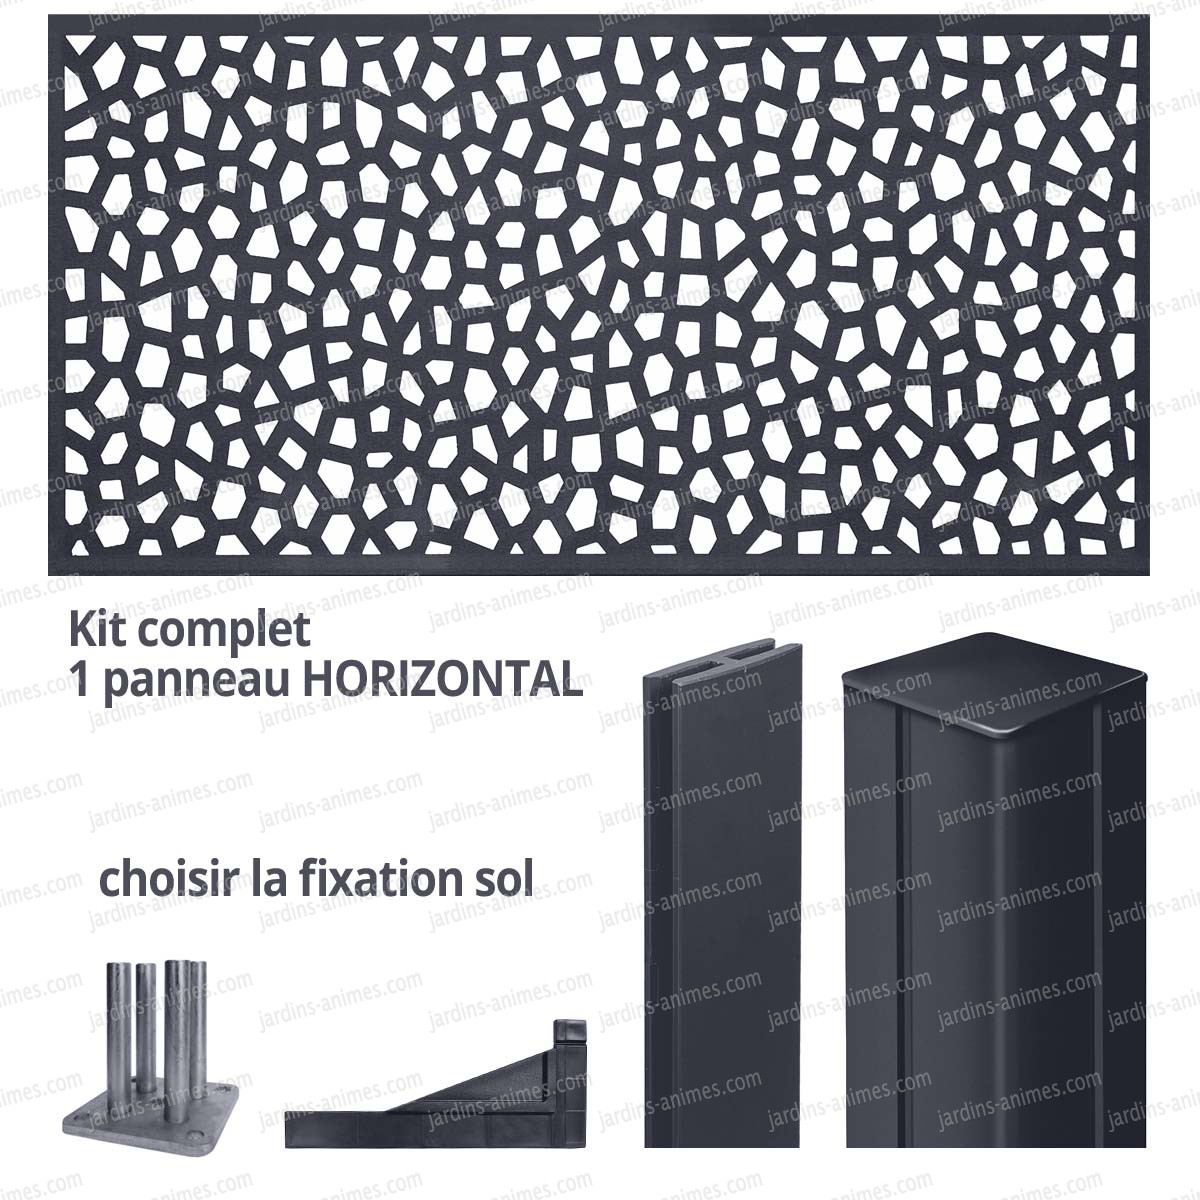 kit panneau d coratif mosaic horizontal 2m x 1m en r sine haute qualit cloture et occultation. Black Bedroom Furniture Sets. Home Design Ideas